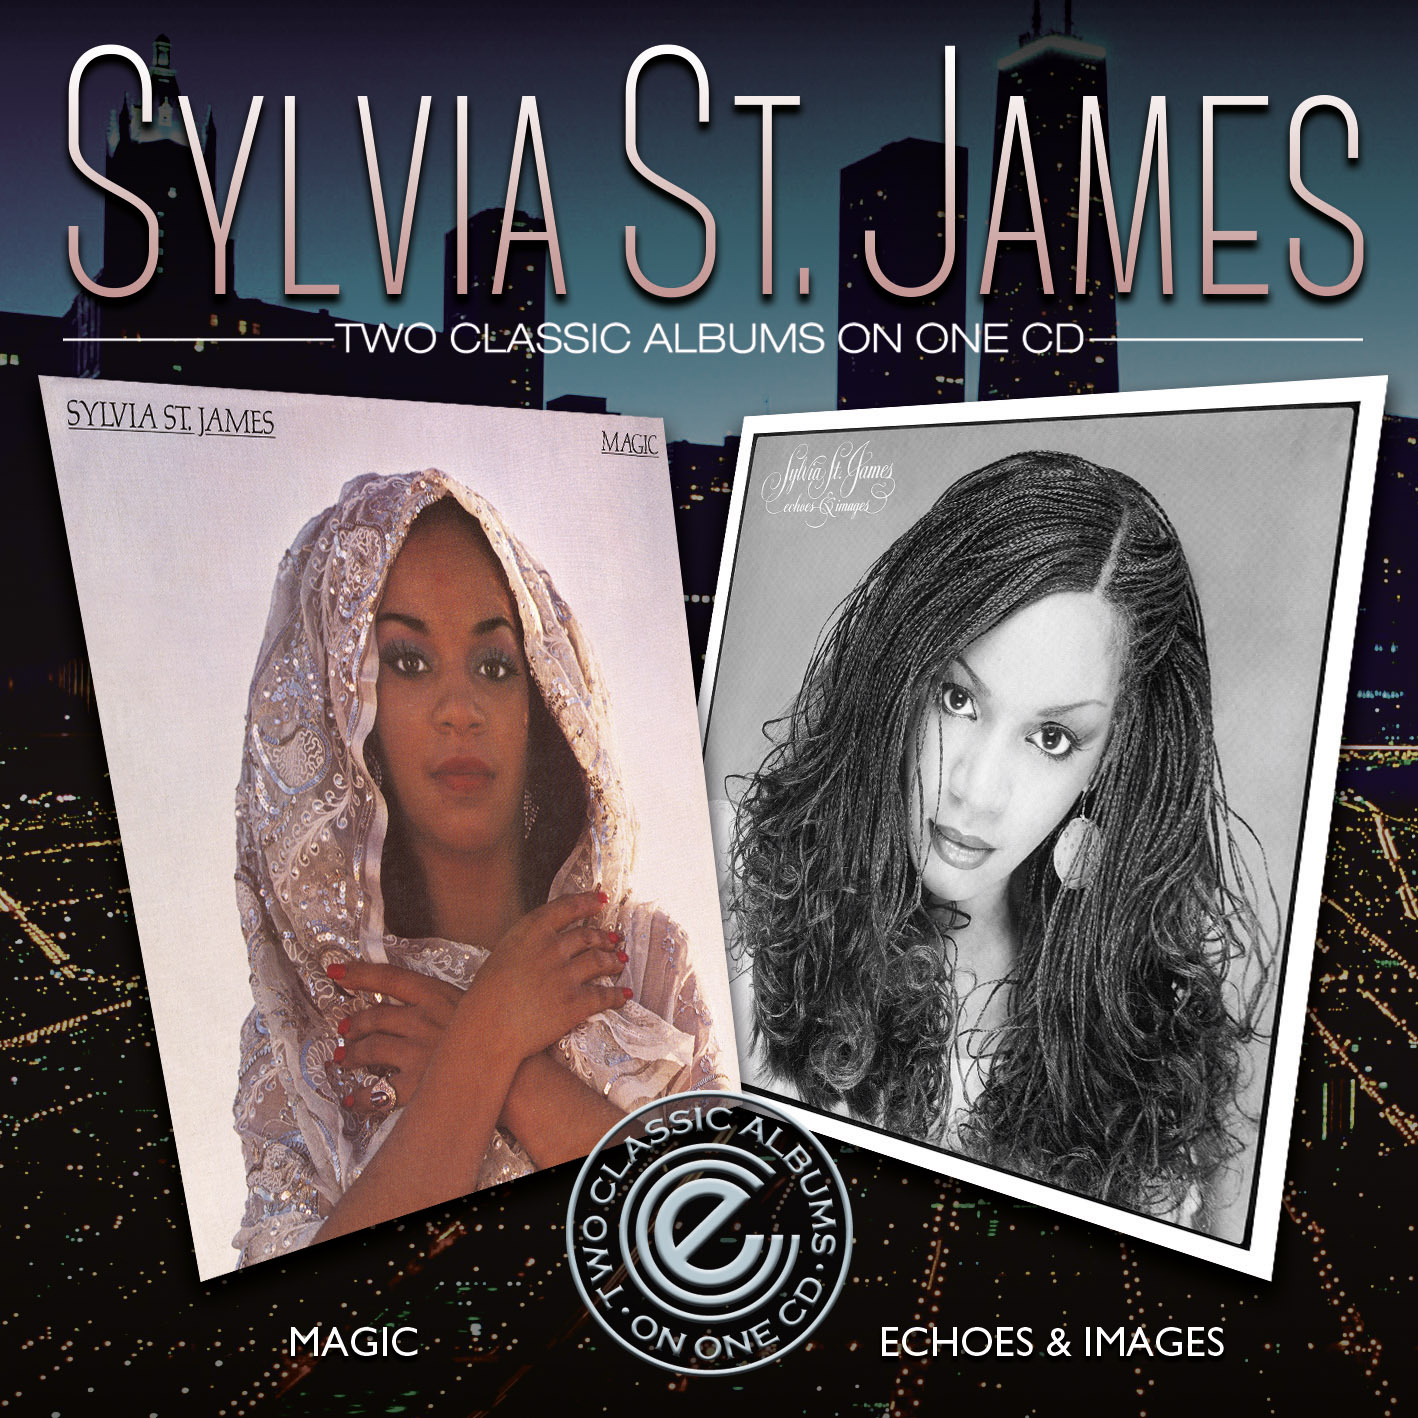 Sylvia St James/MAGIC & ECHOES IMAGES CD